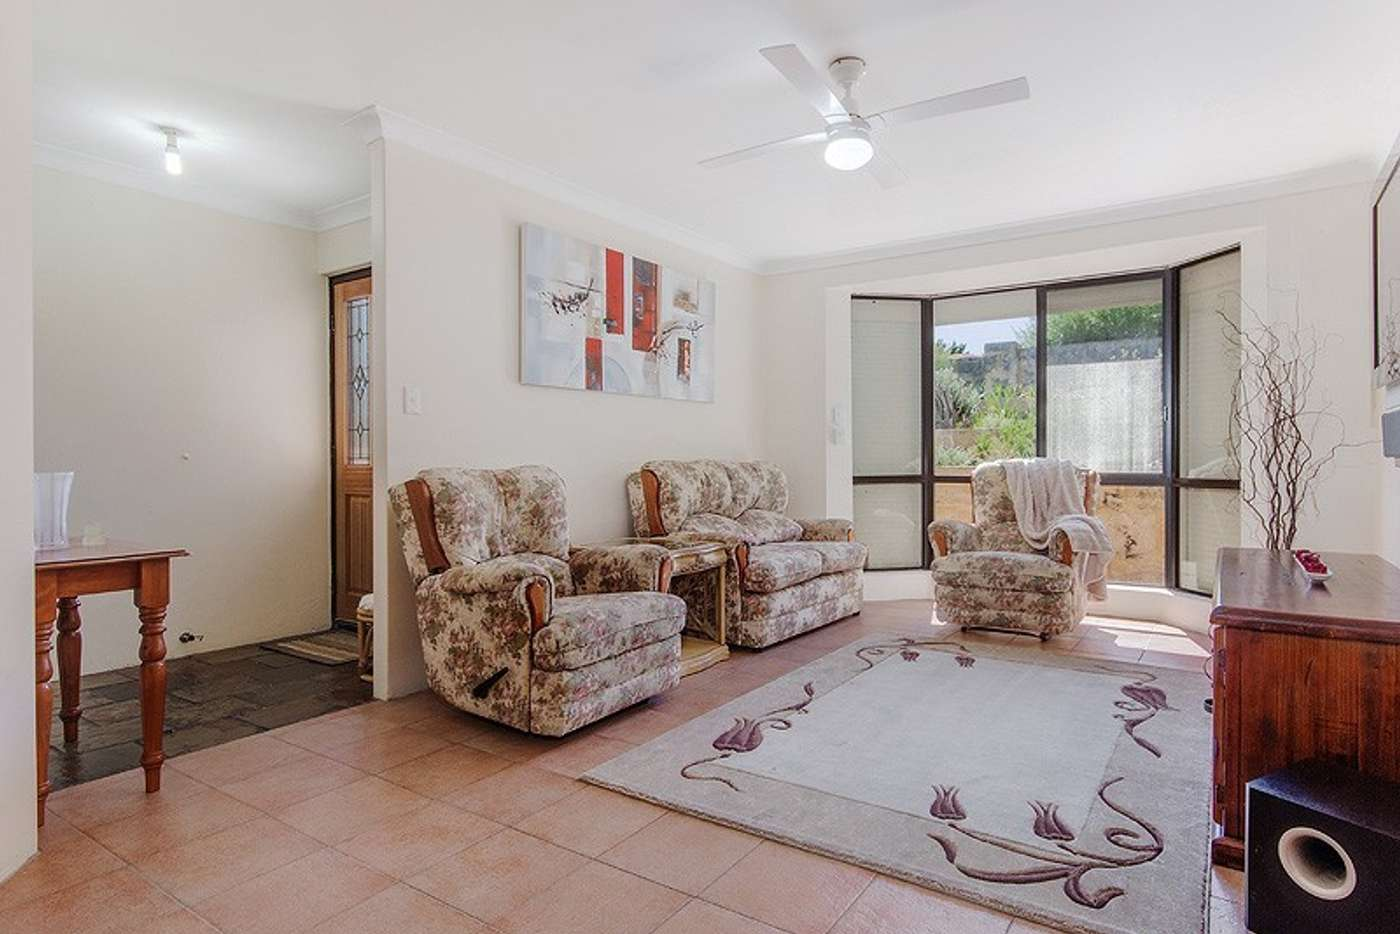 Sixth view of Homely house listing, 56 Tunnicliffe Street, Parmelia WA 6167